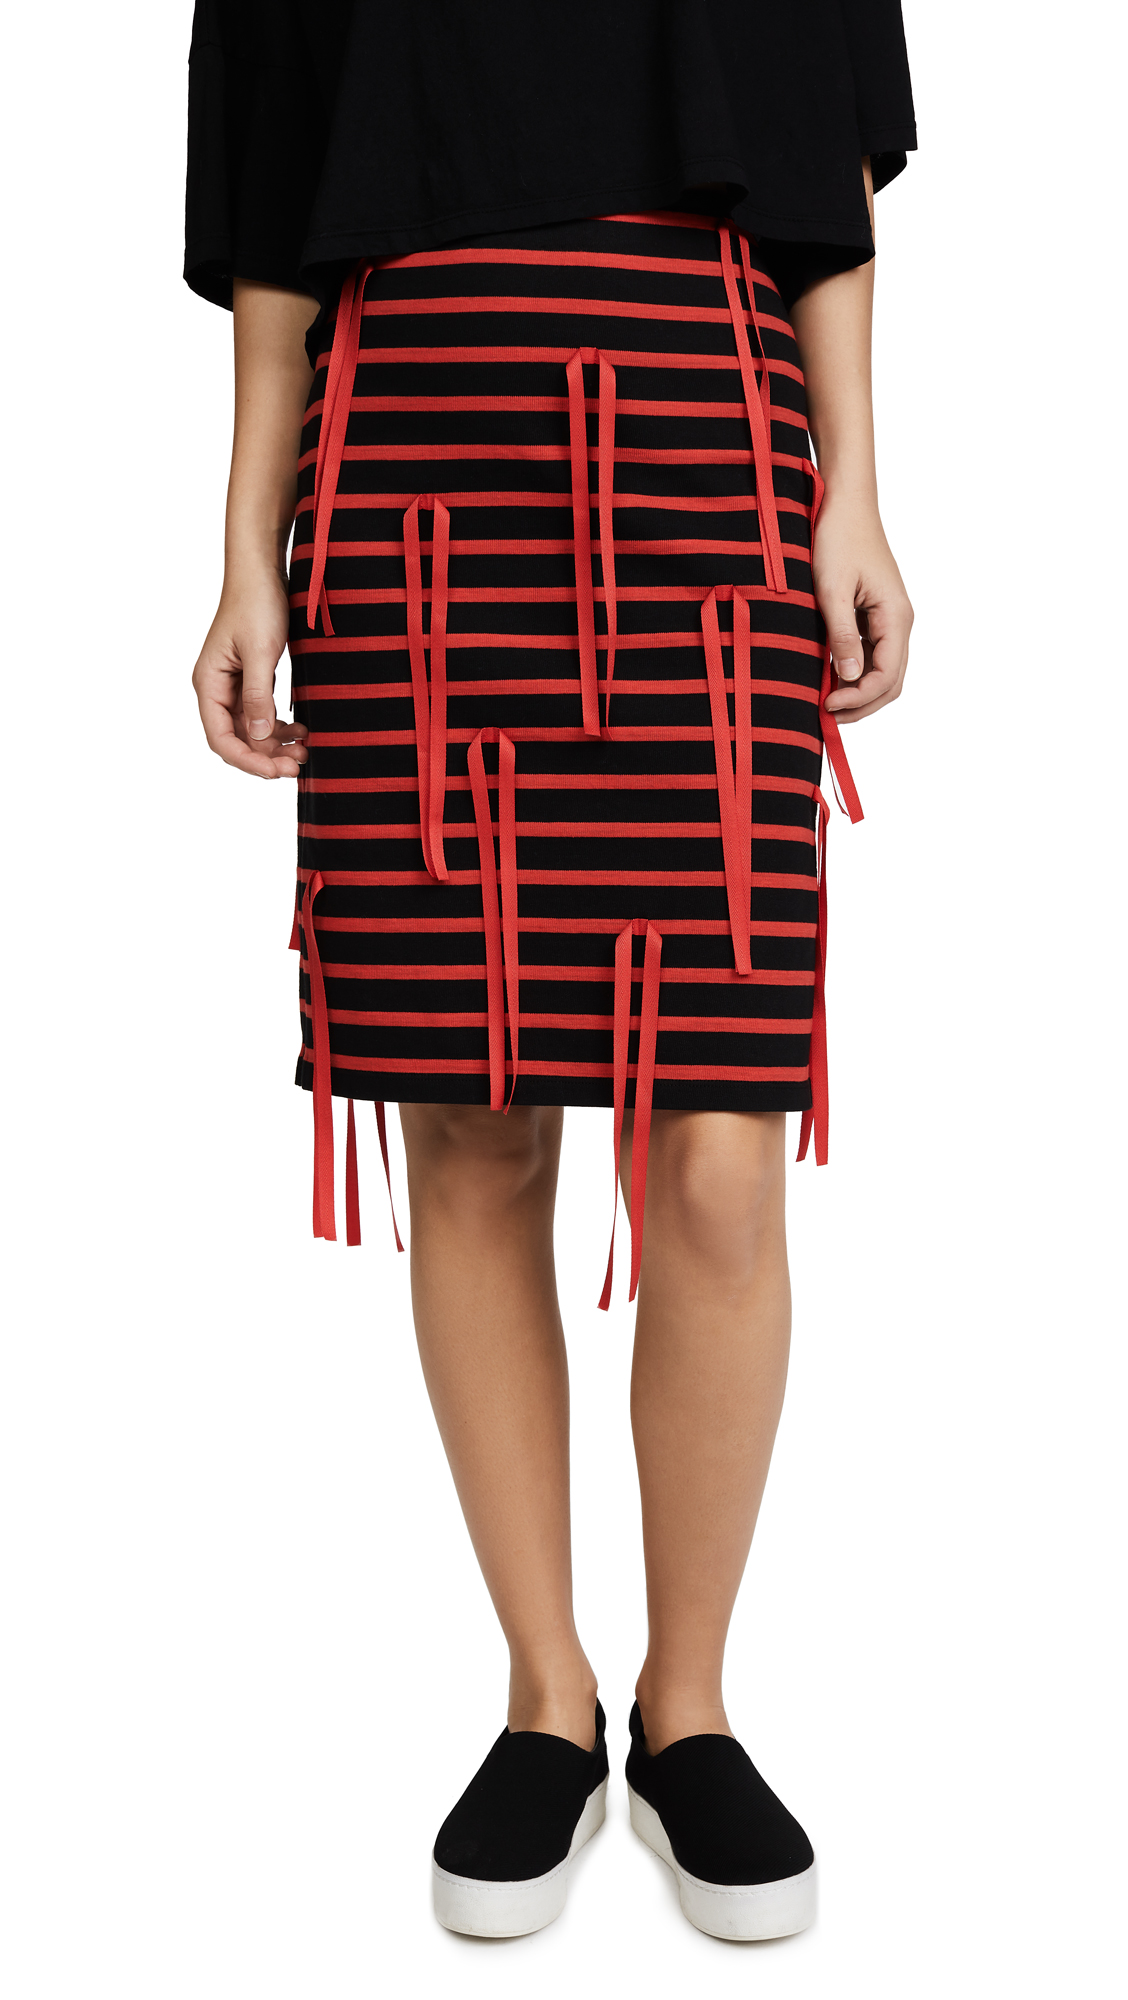 GOEN.J Striped Skirt with Ribbon In Black